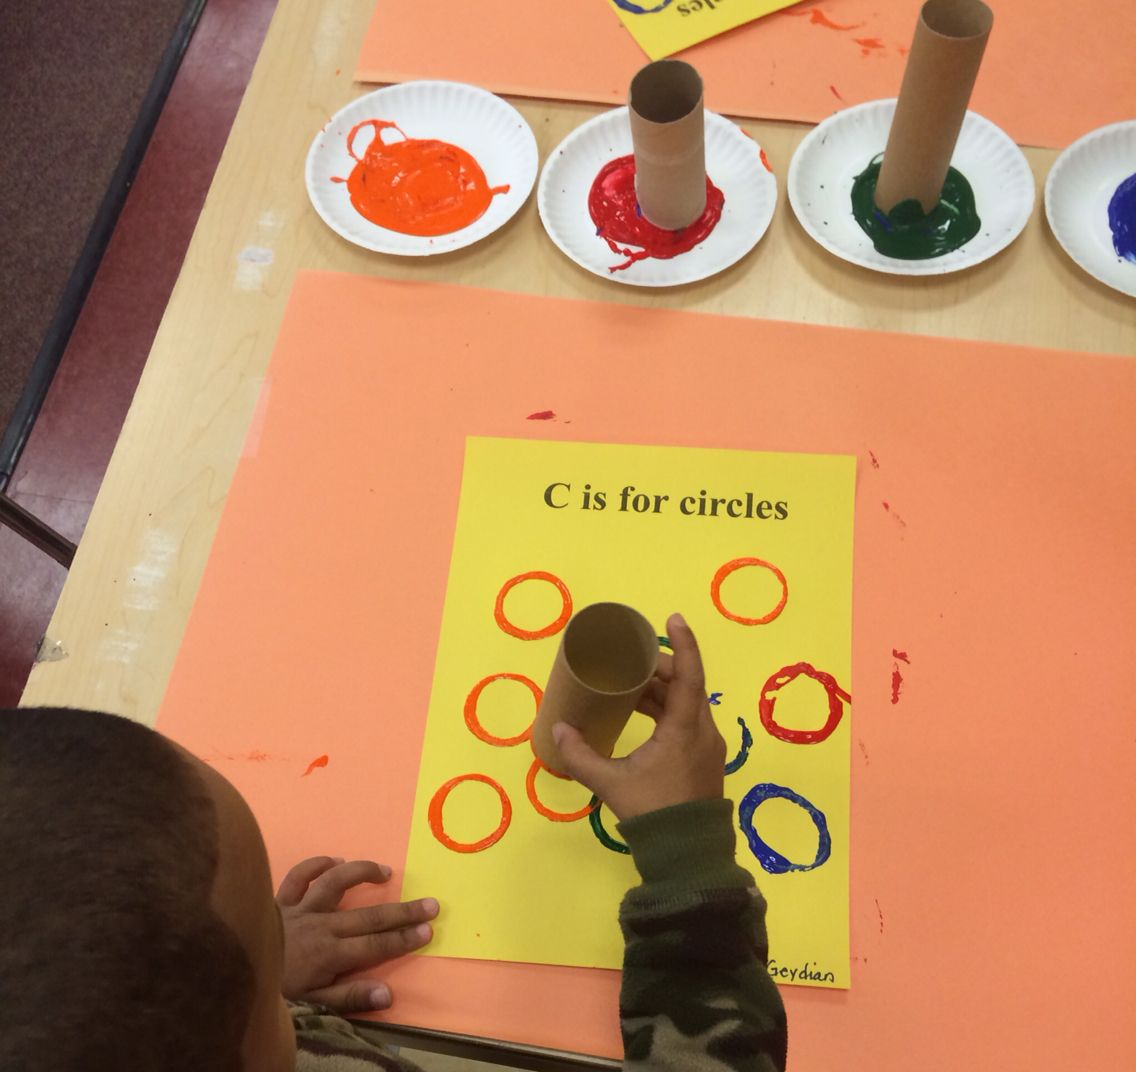 Circle art.  Toilet paper rolls and paint= fun easy activity for circles